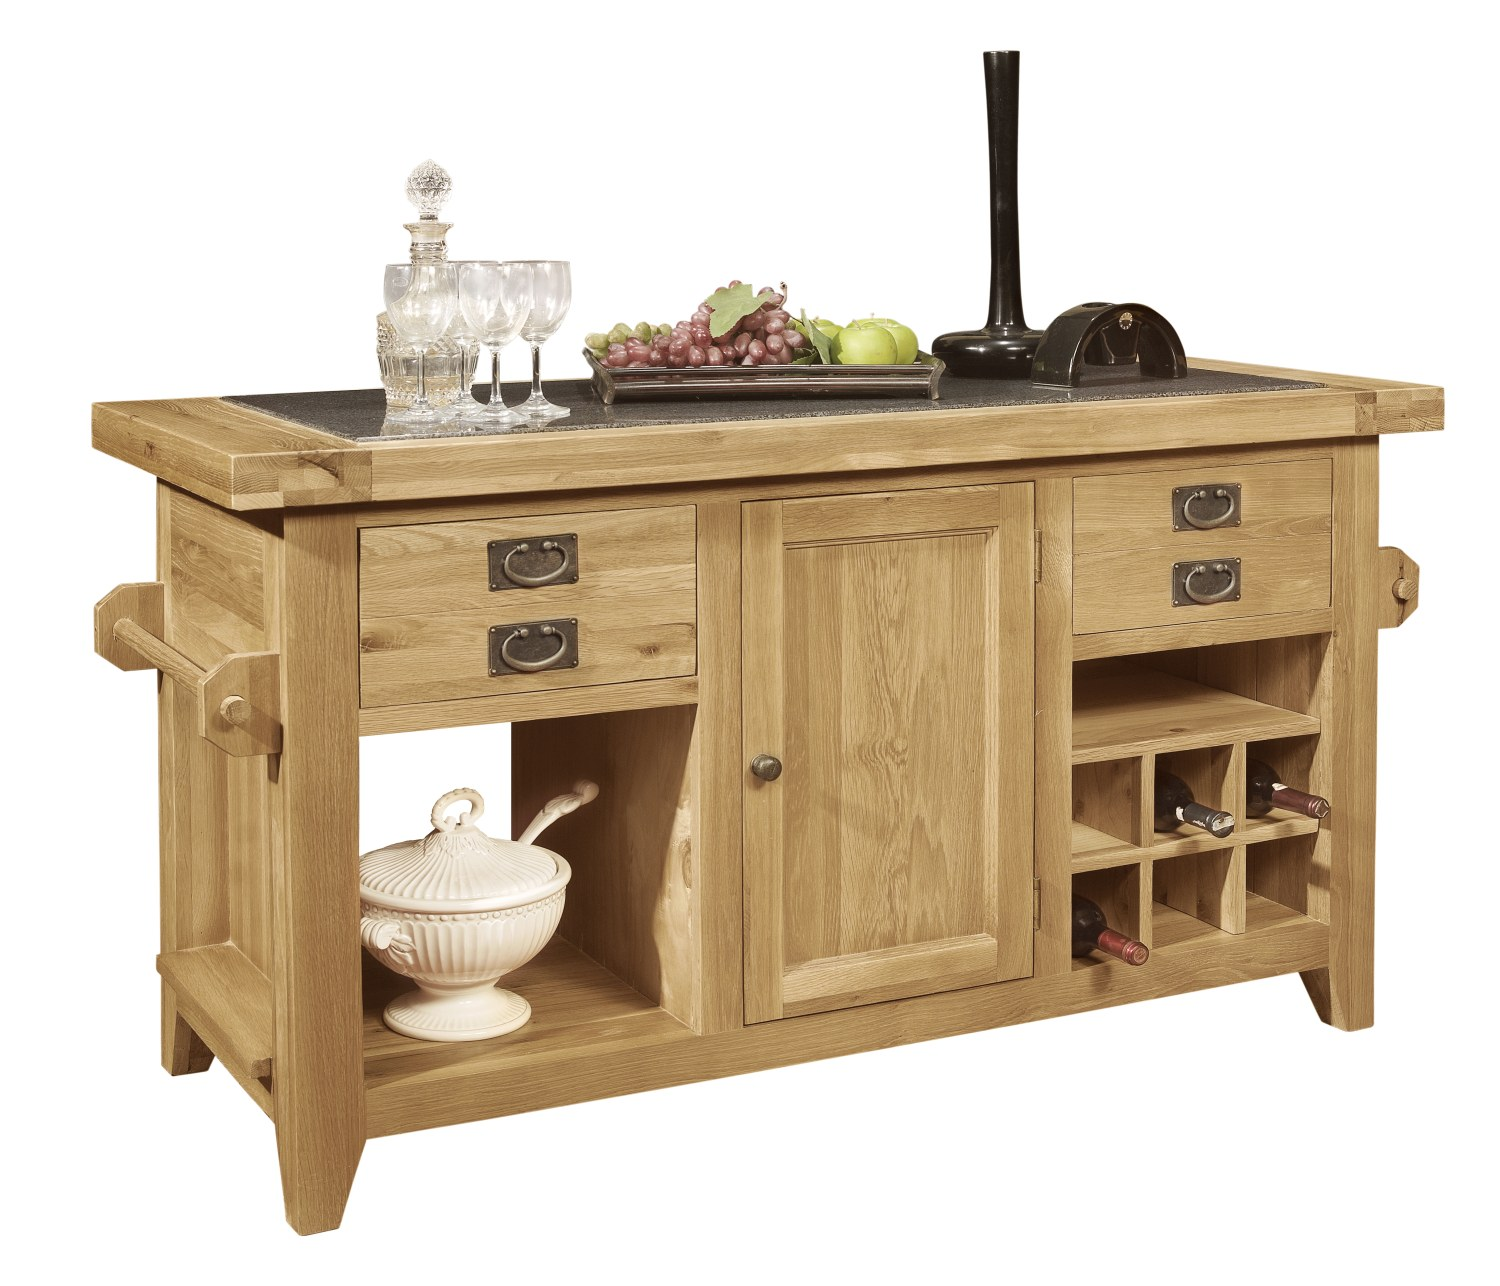 oak kitchen furniture panama solid oak furniture large granite top freestanding 14399